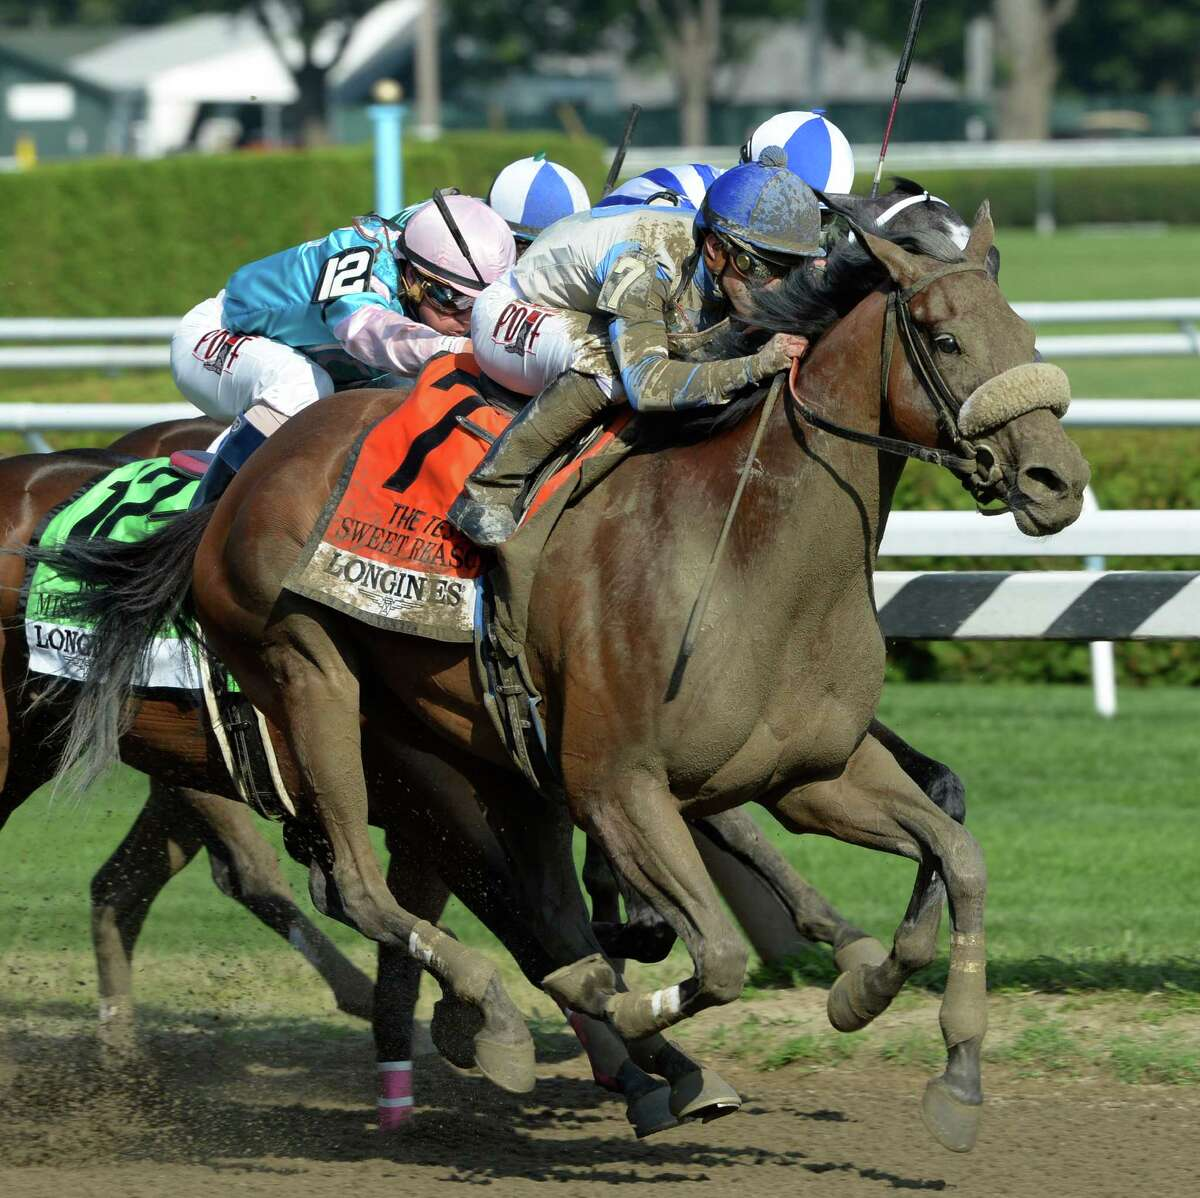 Sweet Reason with jockey Irad Ortiz Jr. wins the 89th running of The Test Stakes Saturday afternoon Aug. 2, 2014 at the Saratoga Race Course in Saratoga Springs, N.Y. (Skip Dickstein/Times Union) ORG XMIT: NYALT